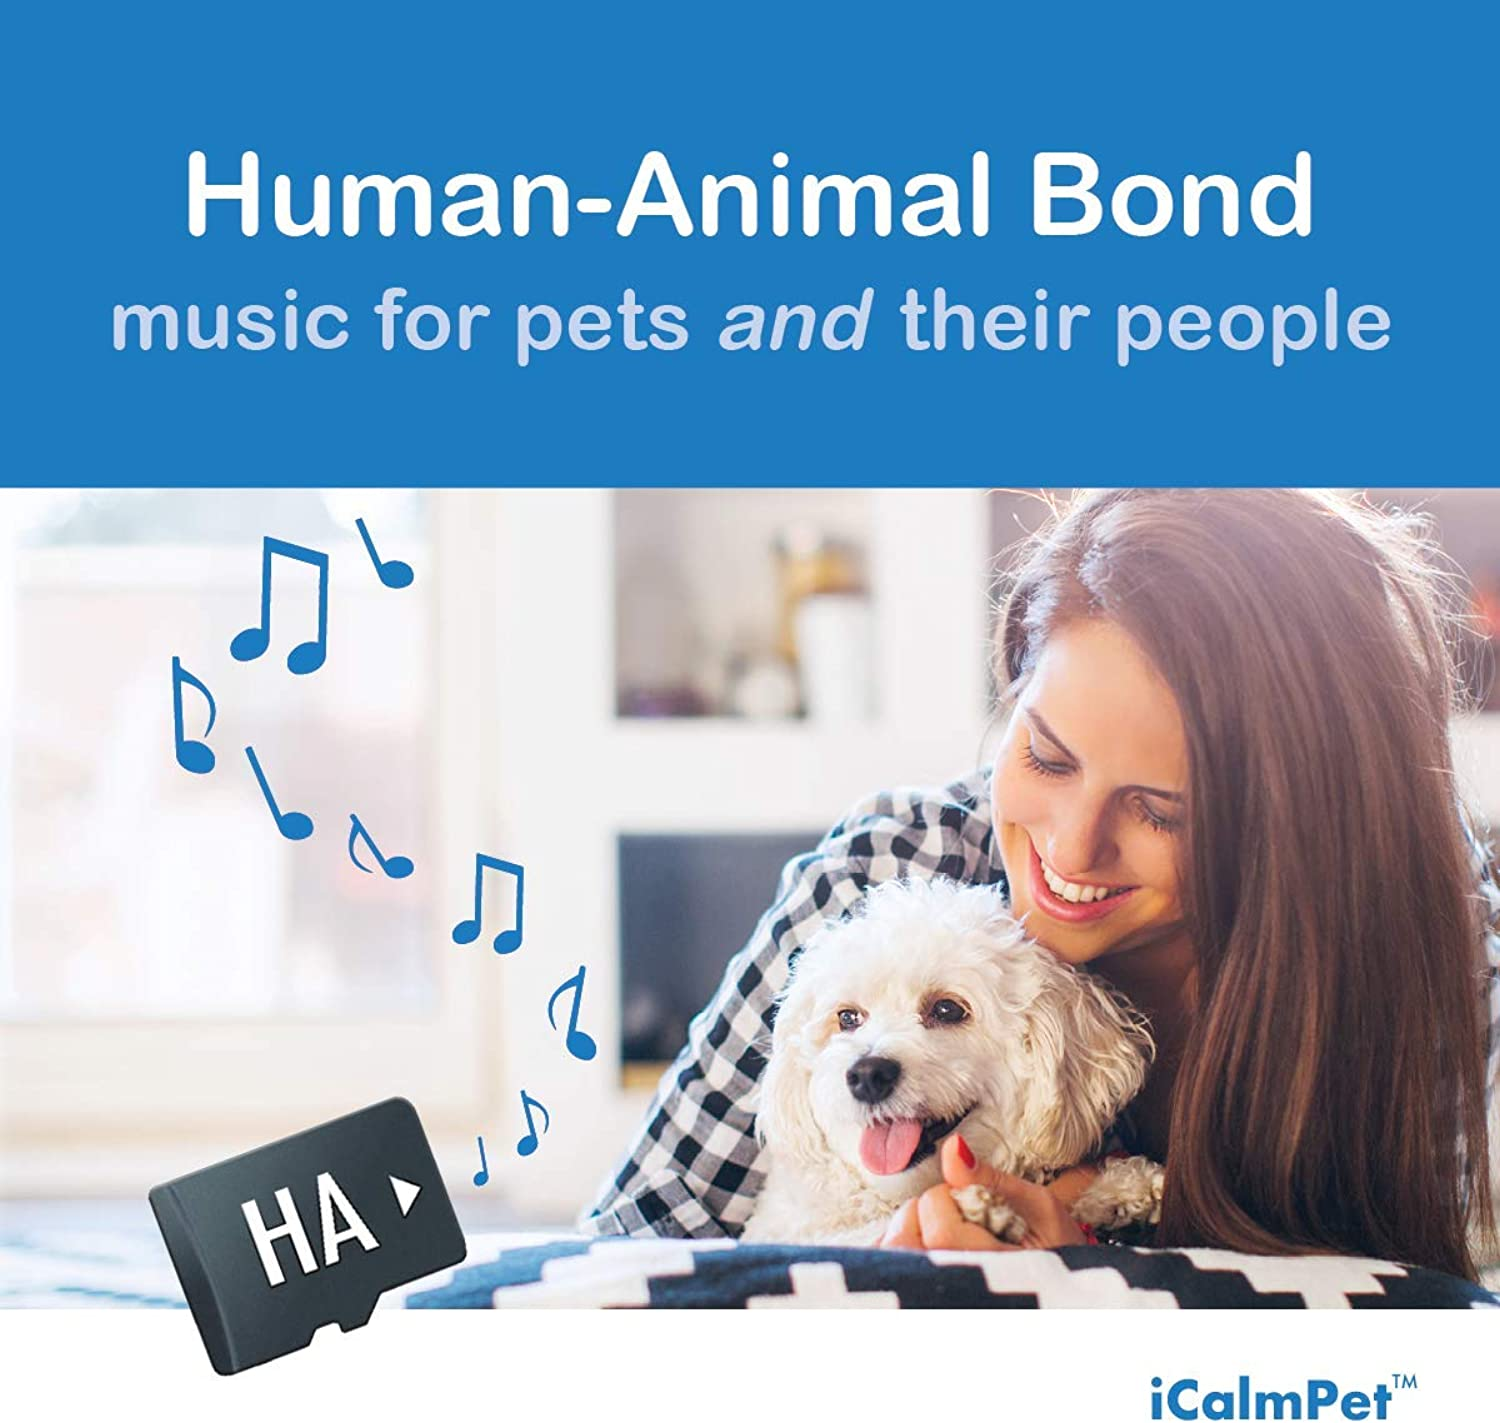 ICalmDog Canine Household  Beautiful classical music by Through a Dog's Ear to nurture the human animal bond